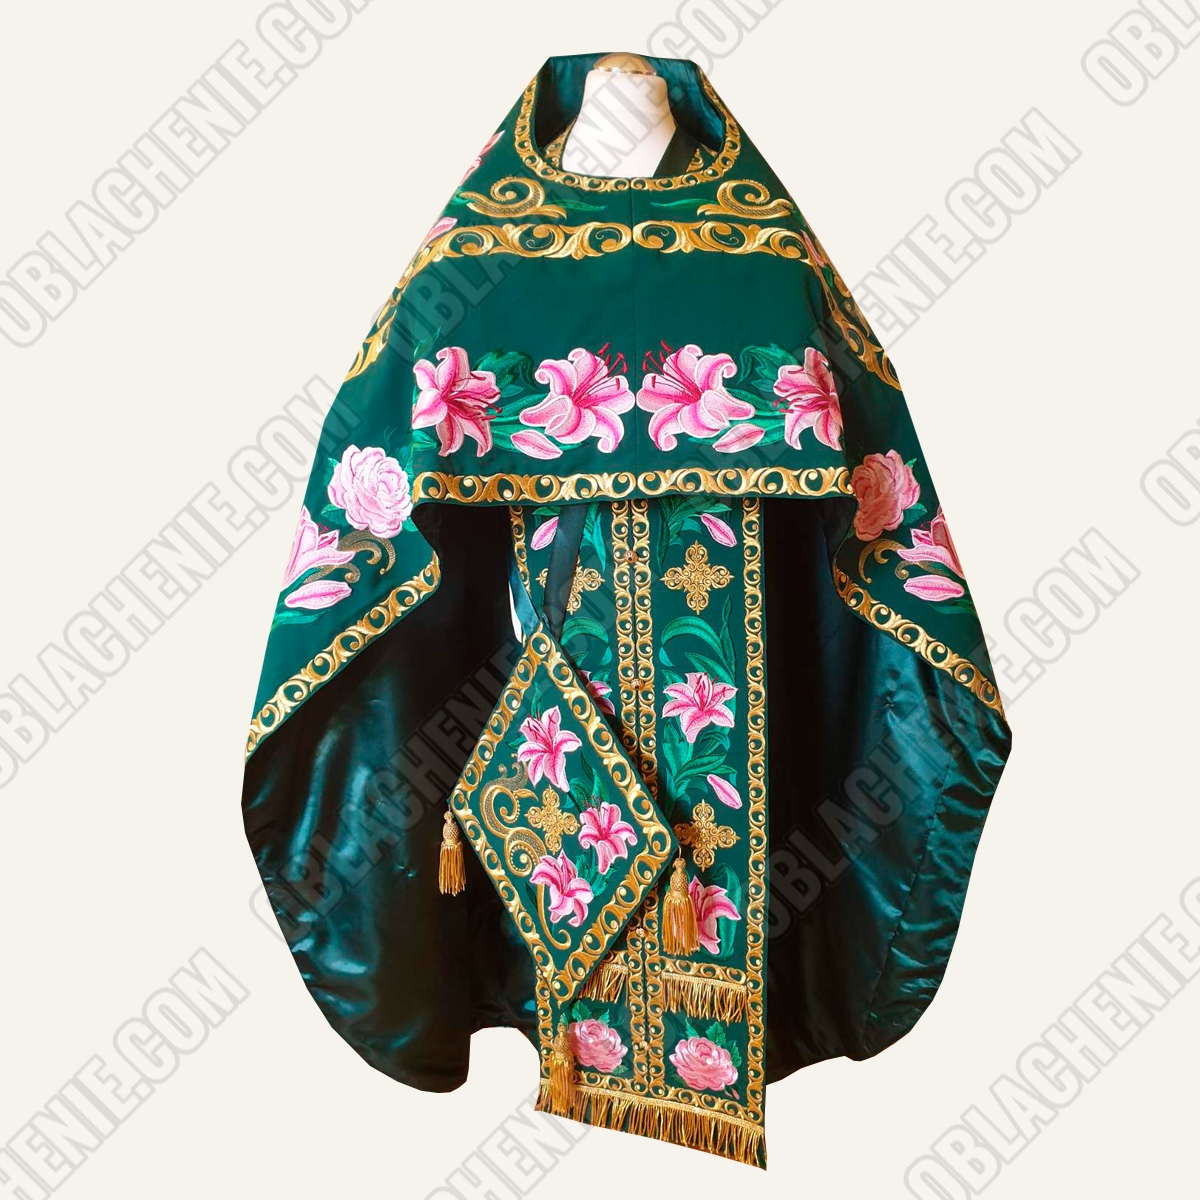 EMBROIDERED PRIEST'S VESTMENTS 11082